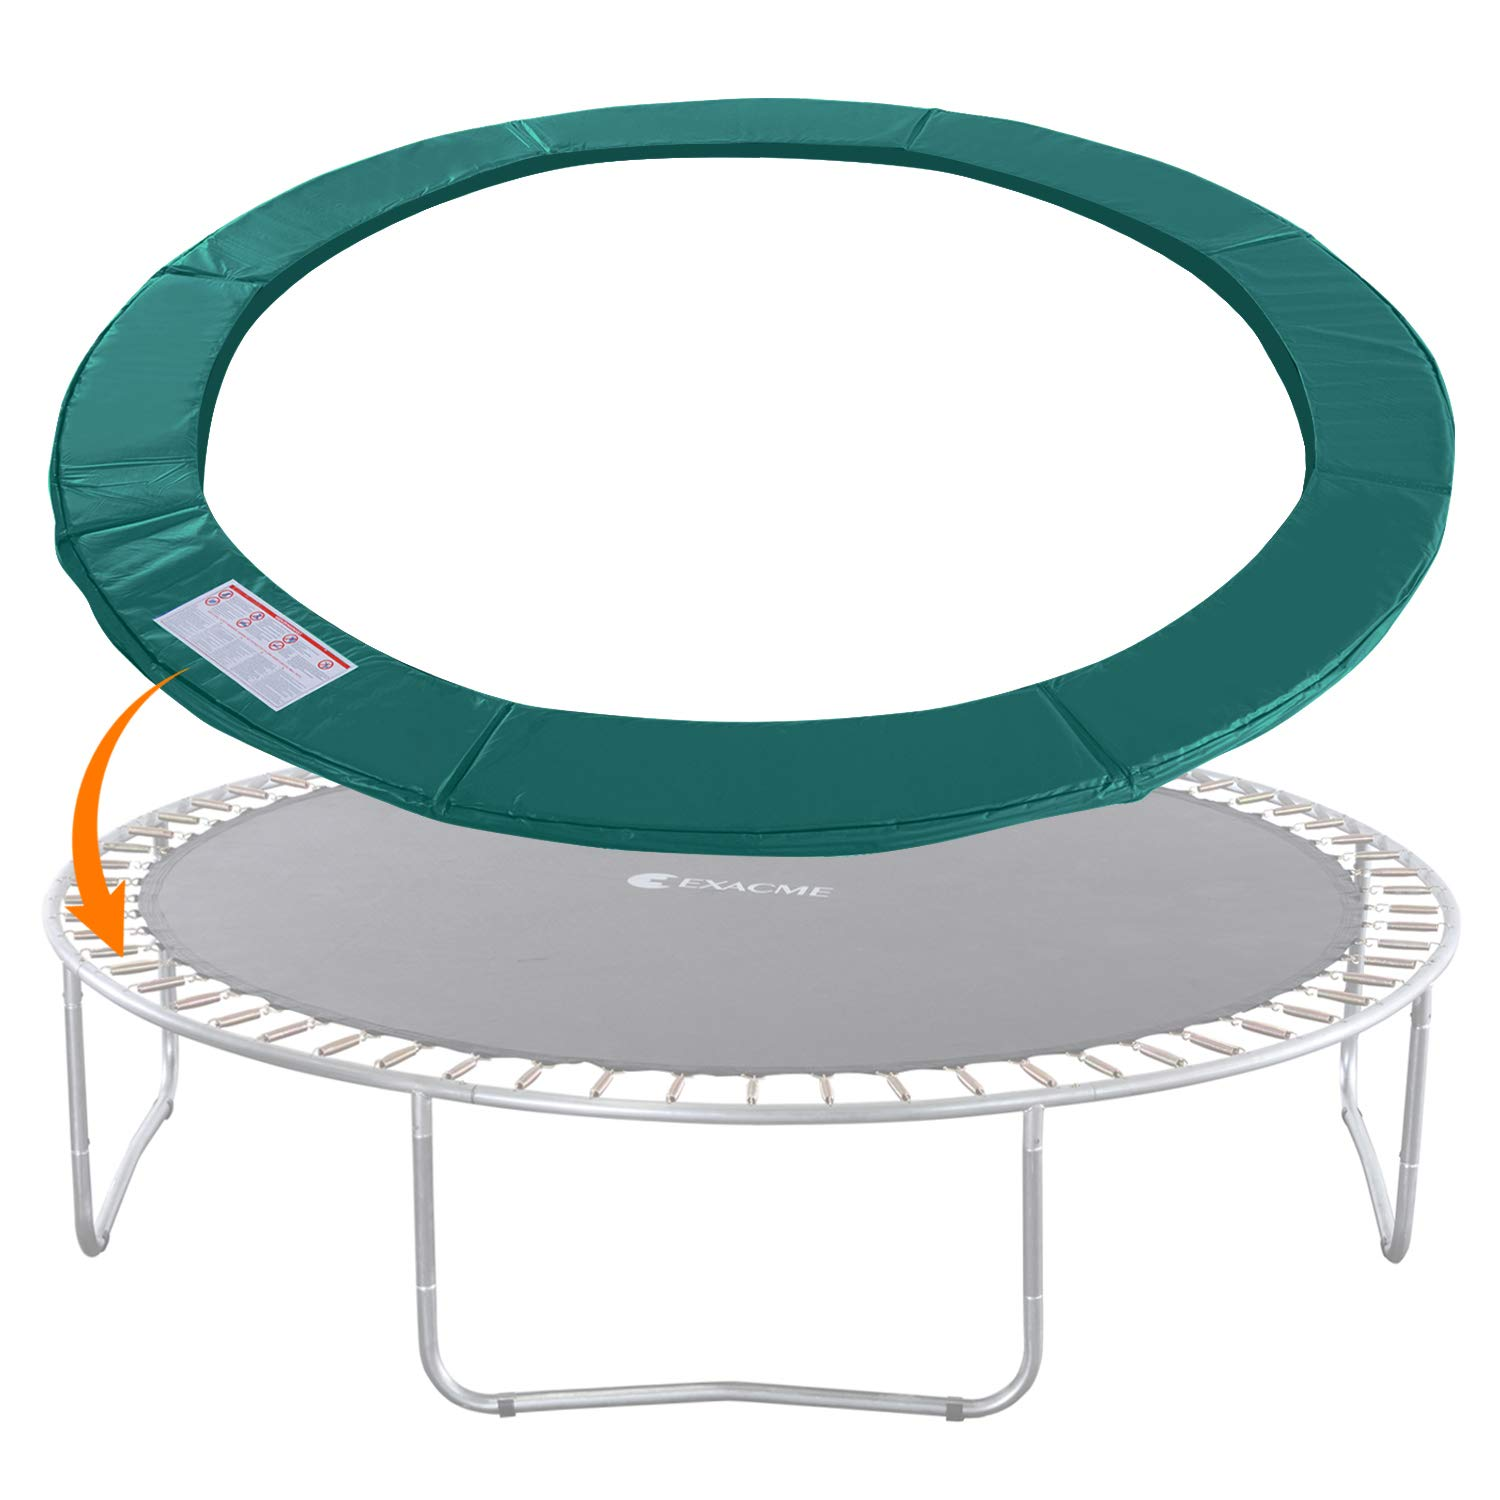 Exacme Trampoline Replacement Safety Pad Round Spring Cover, No Slots (Green, 14 Foot)